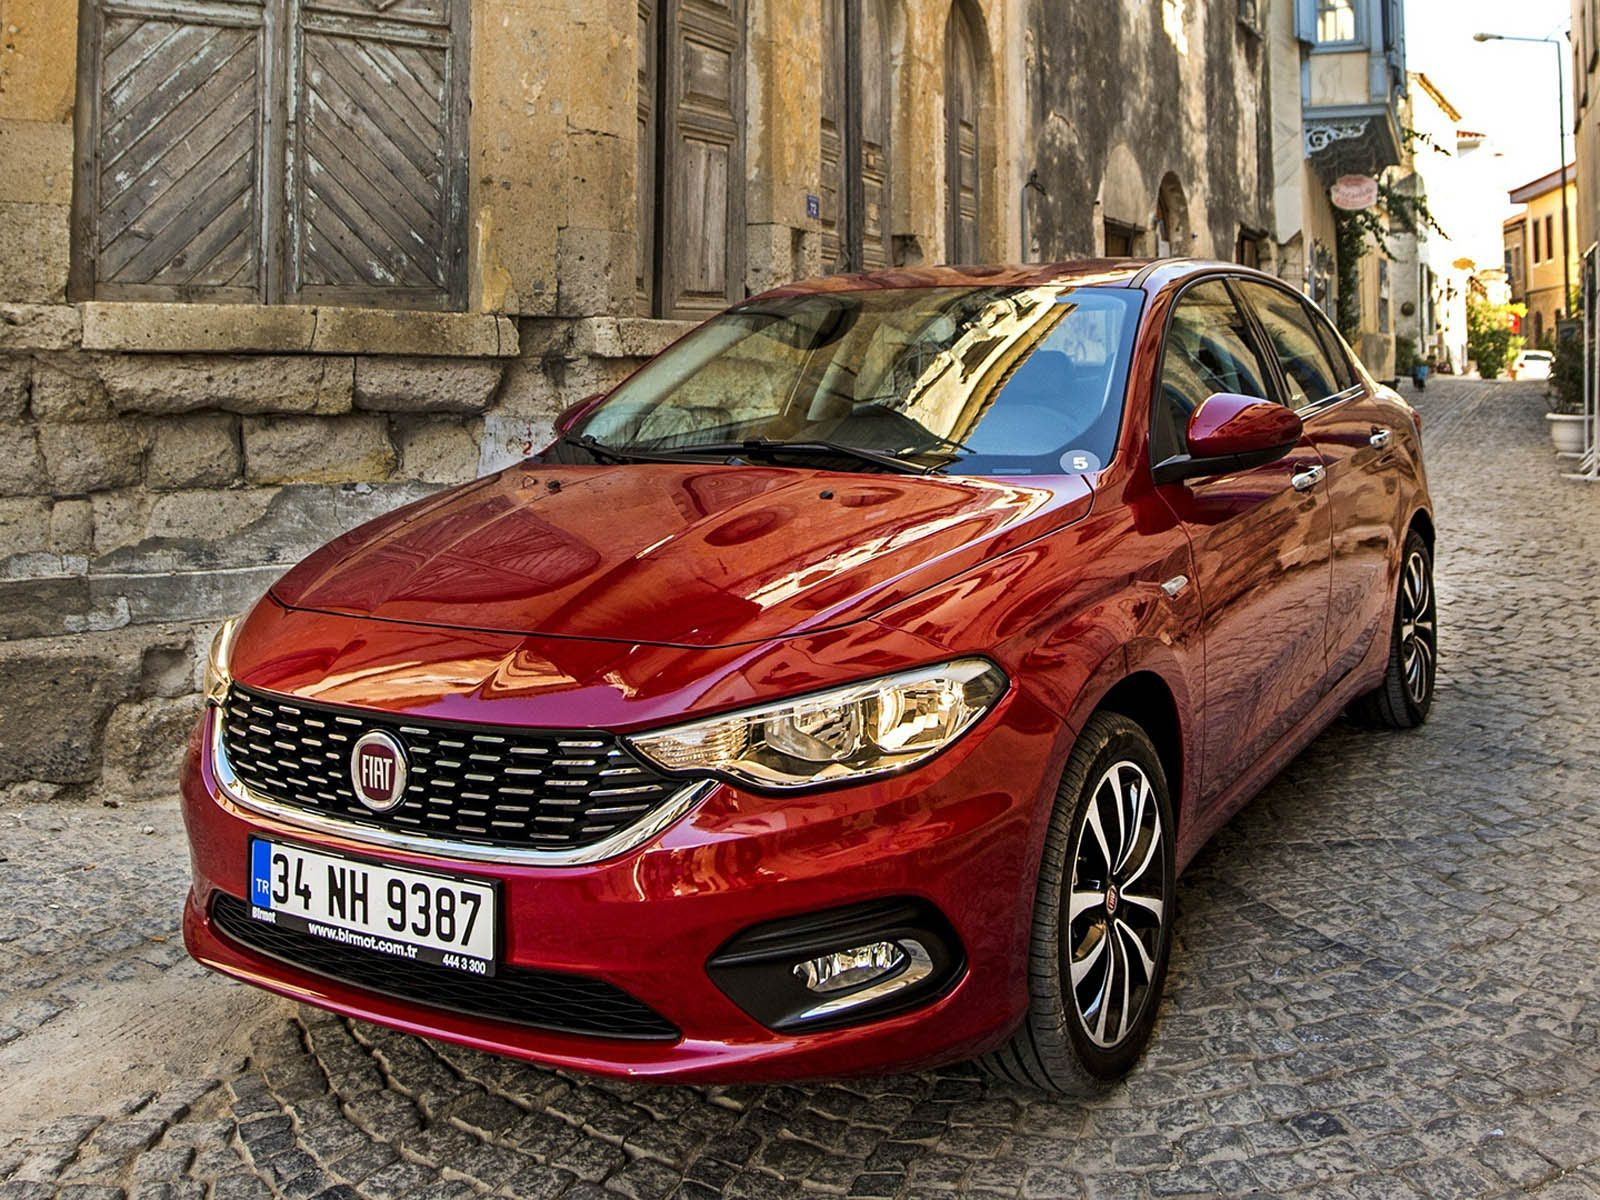 Pin By Diana Watson On Fiat Tipo Car Bmw Fiat Tipo